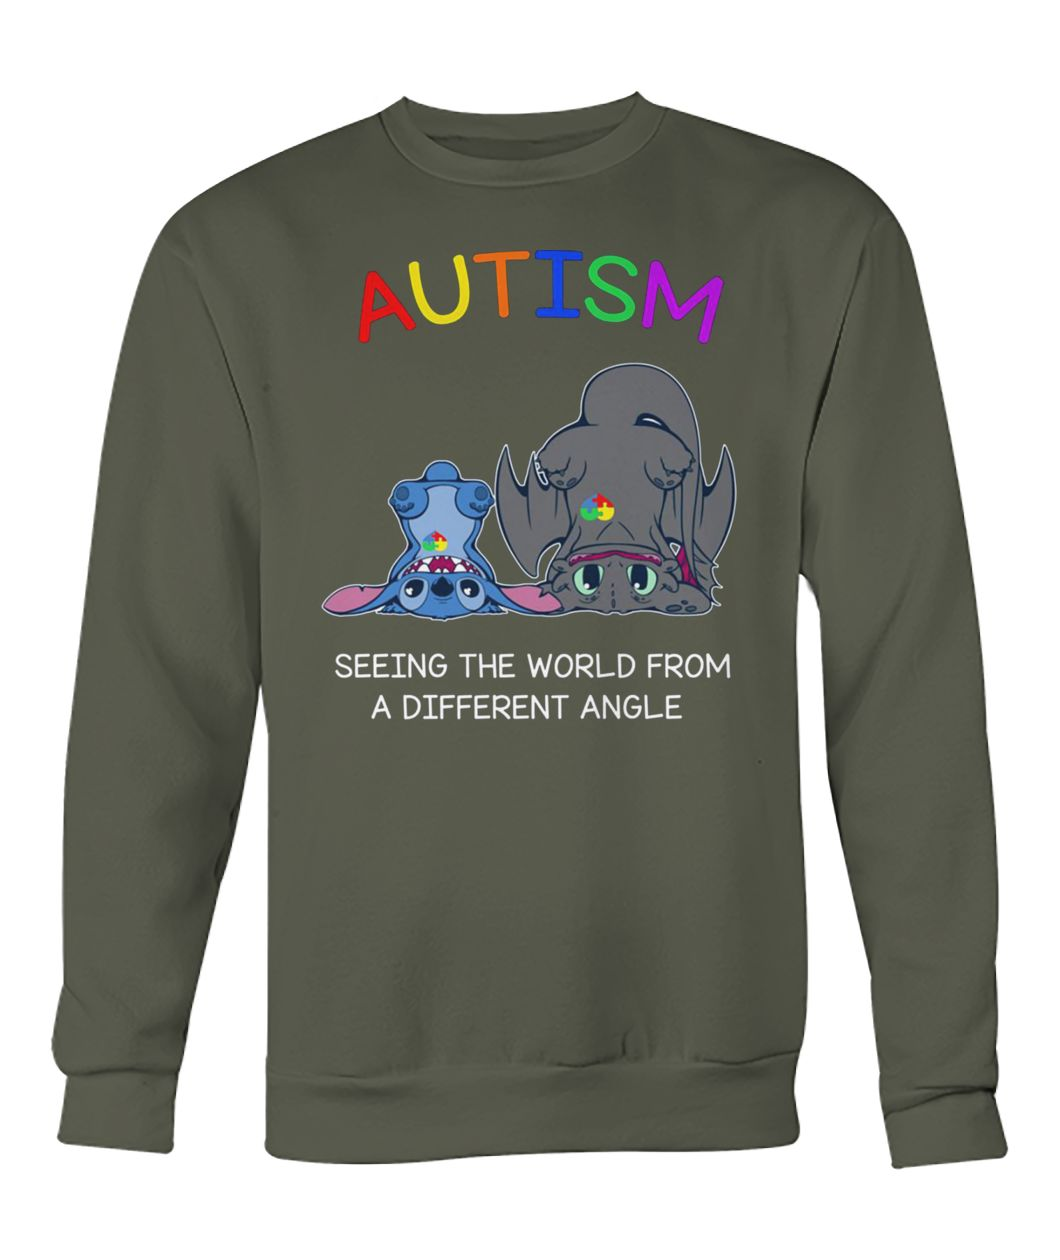 Stitch and toothless autism seeing the world from a different angle crew neck sweatshirt